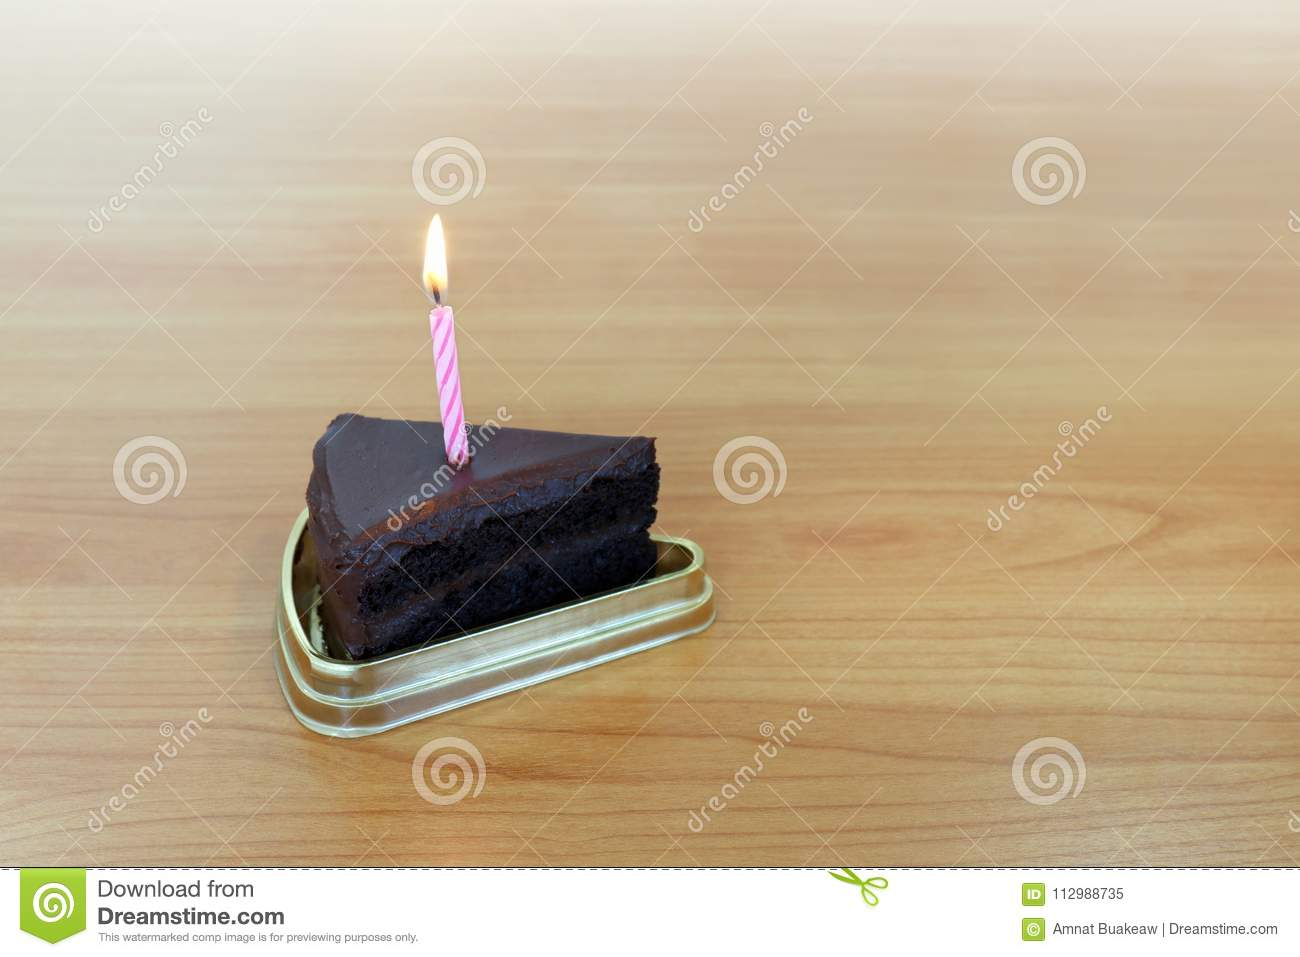 HBD cake Chocolate dark 1 piece crescent, Blowing Cake Candle brown, Happy Birthday one year anniversary on table wood